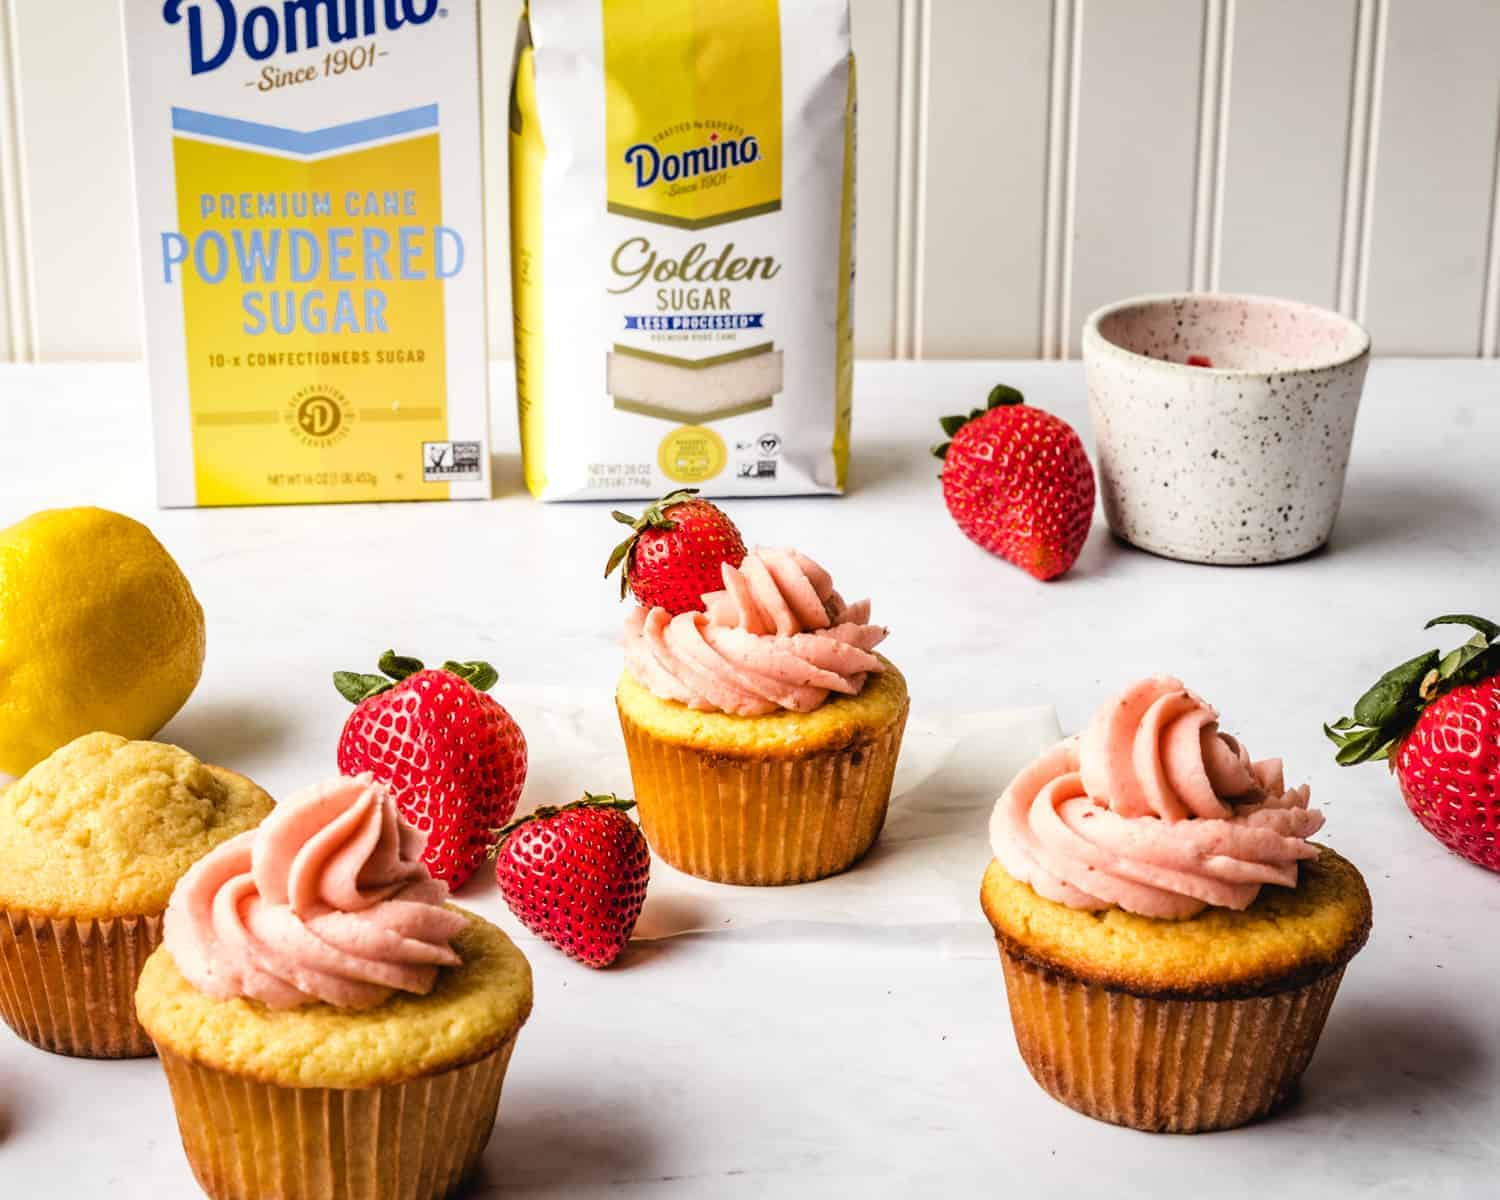 cupcakes and strawberries